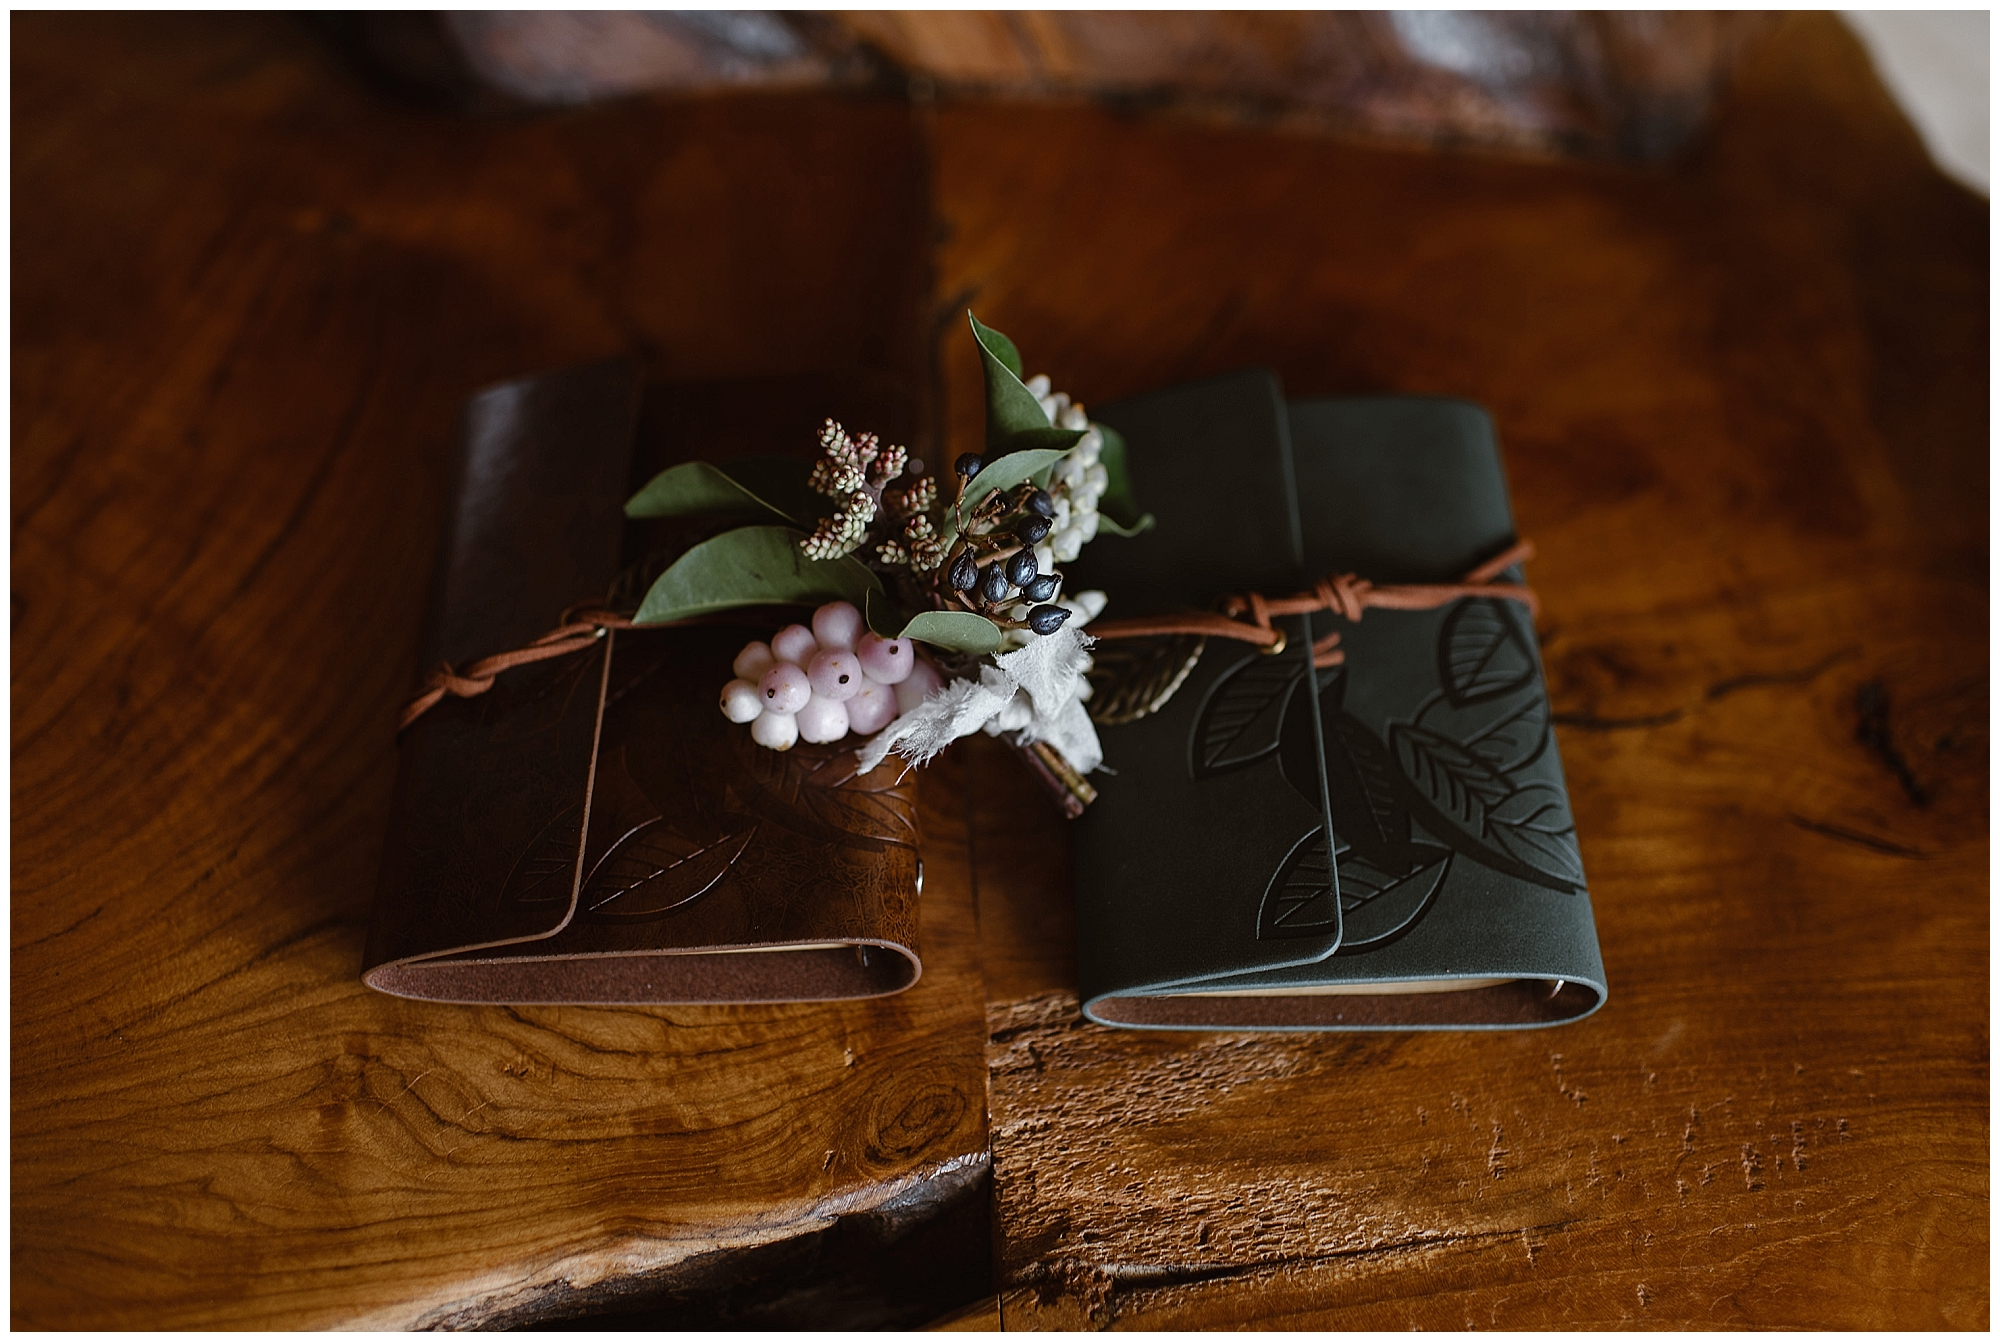 Marlayna and Austin handwrote their vows to each other in leather bound notebooks for their snowy winter elopement ceremony. Photo by Adventure Instead, Maddie Mae Elopement Photographers.